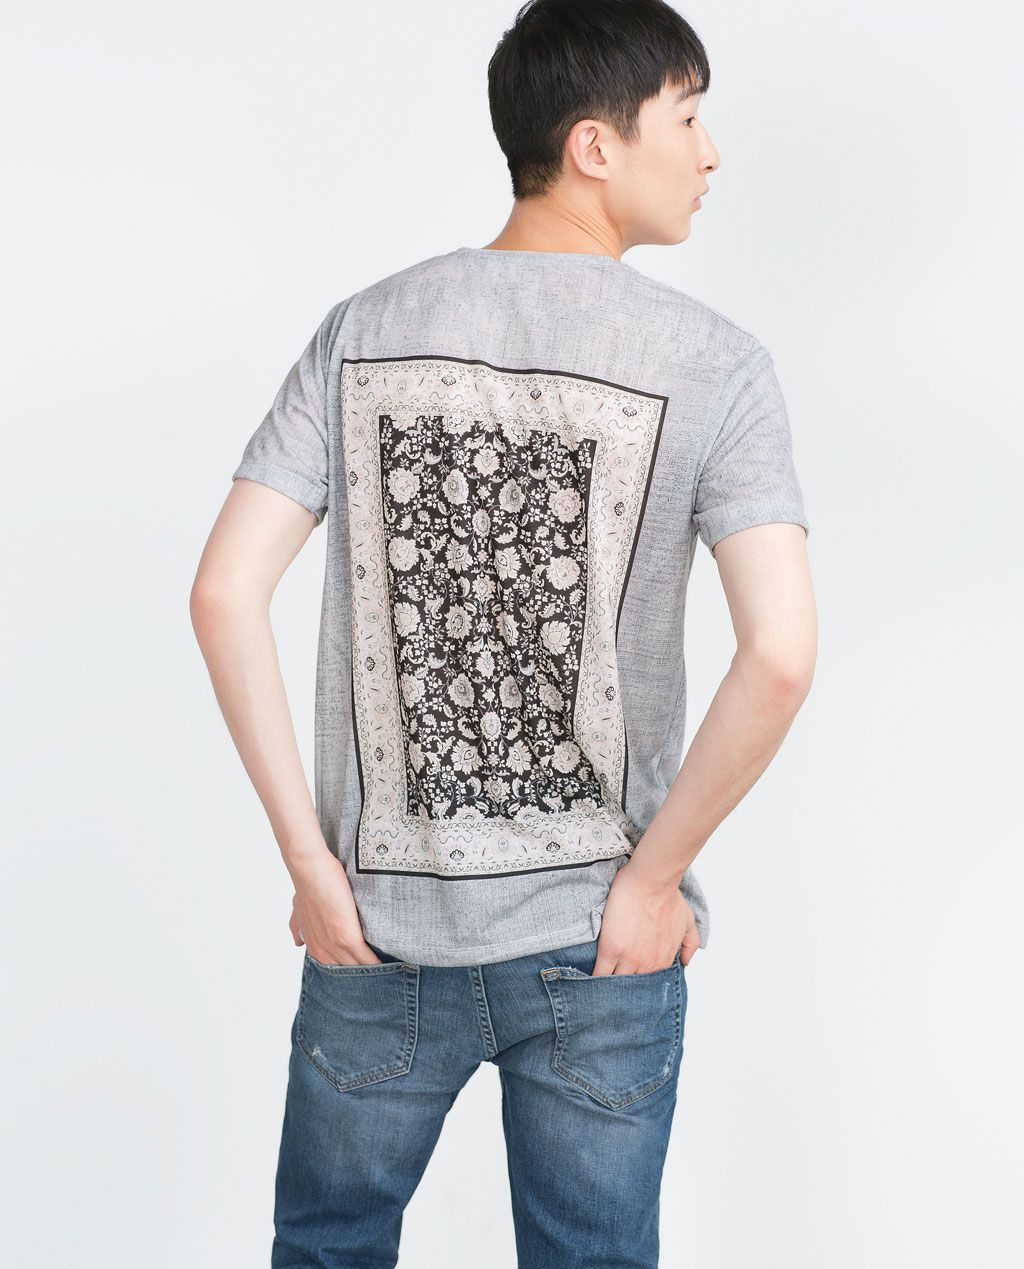 Zara black t shirt india - Latest Fall Winter Trends For Men S T Shirts At Zara Online Find Long And Short Sleeve White Black Graphic Plain Crew And V Neck T Shirts For Men